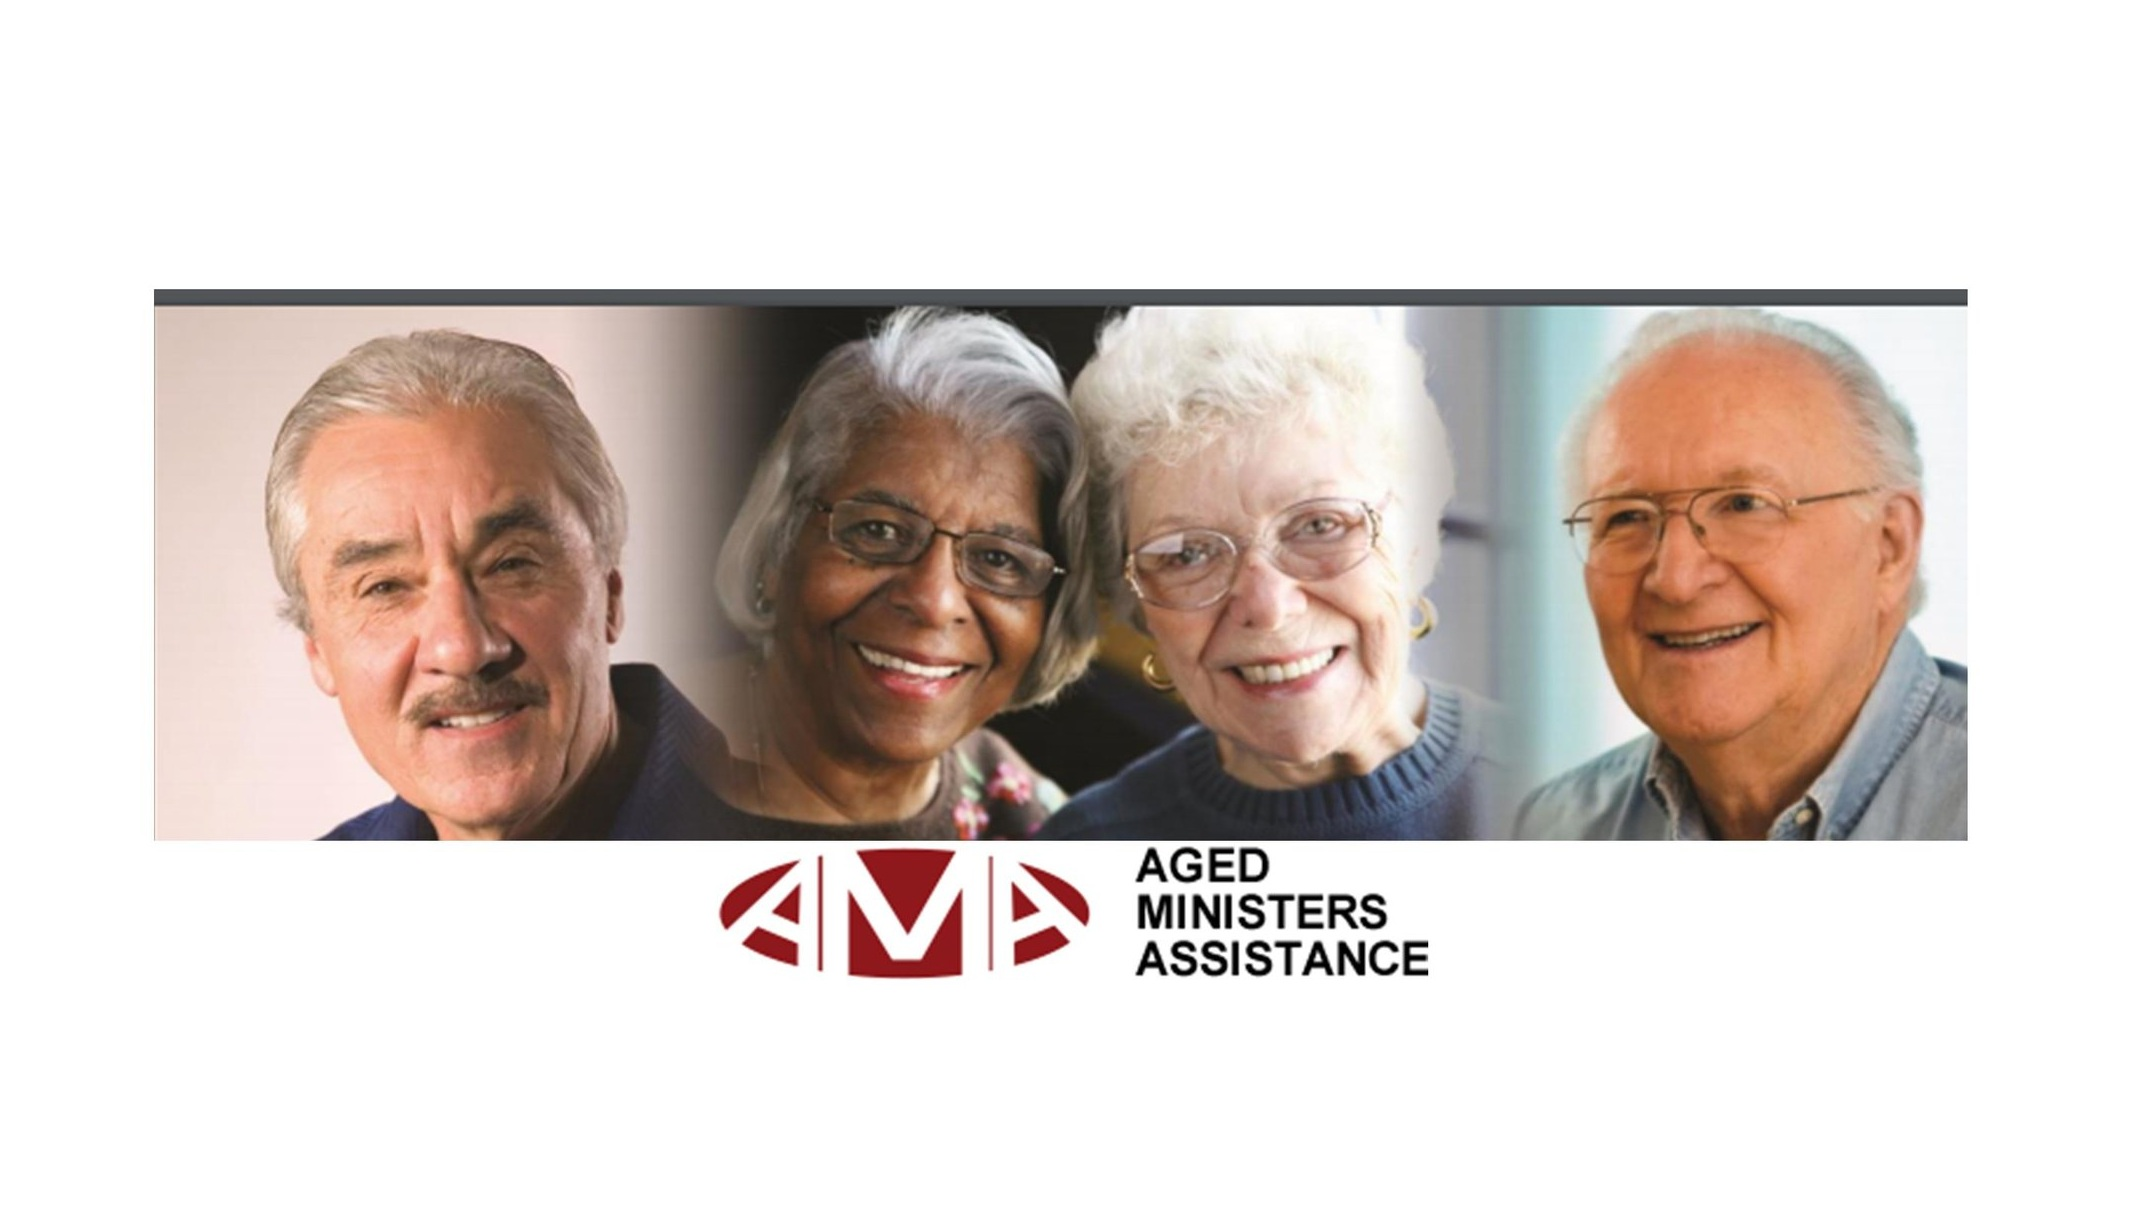 AGED MINISTERS ASSISTANCE